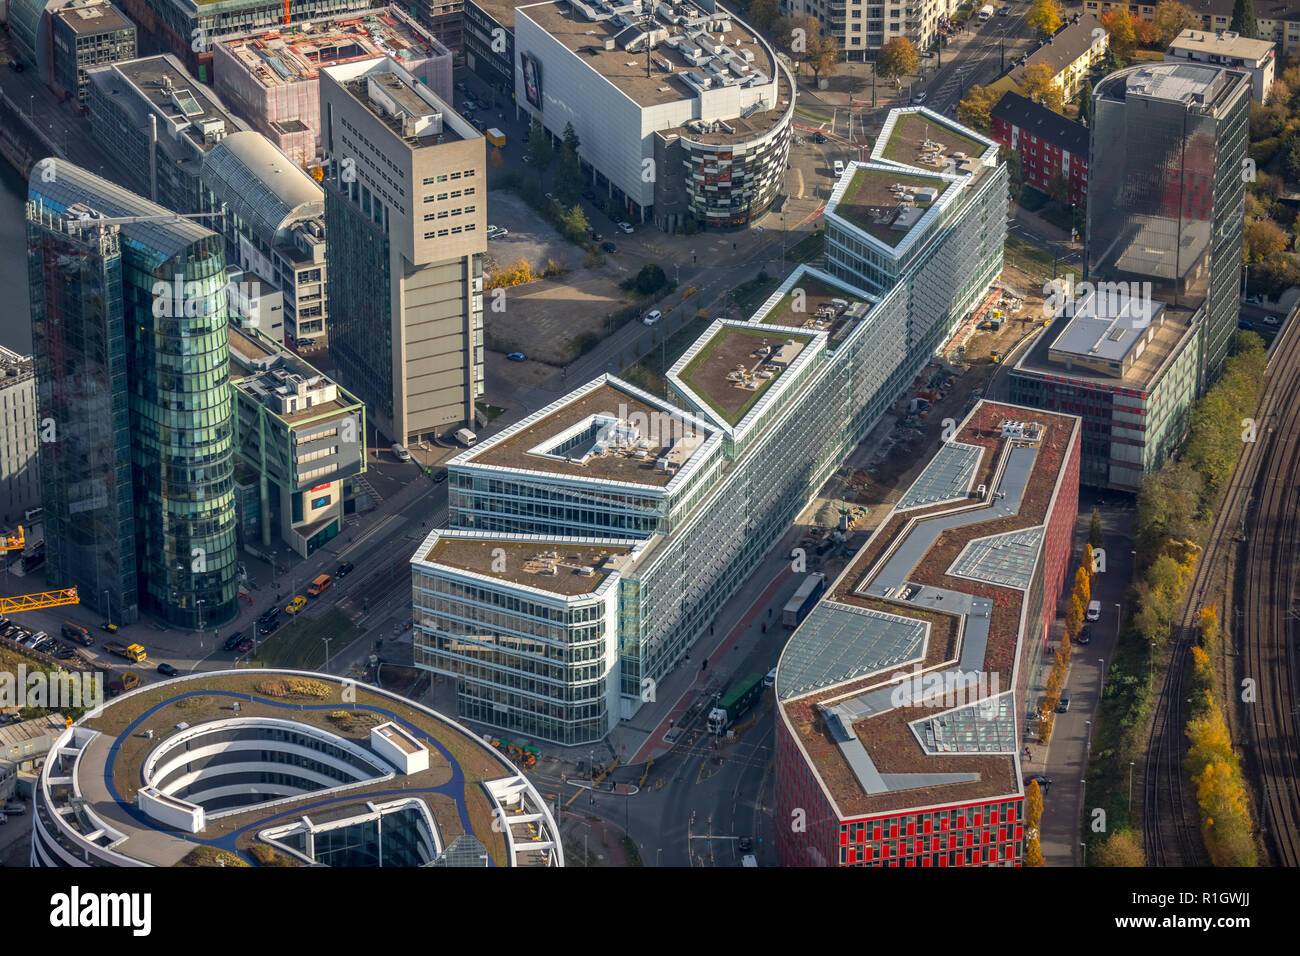 "Aerial View, FLOAT, Dusseldorf, new construction of office and commercial building ""FLOAT"" WITTE project management, Dusseldorf media port, Francis St Stock Photo"